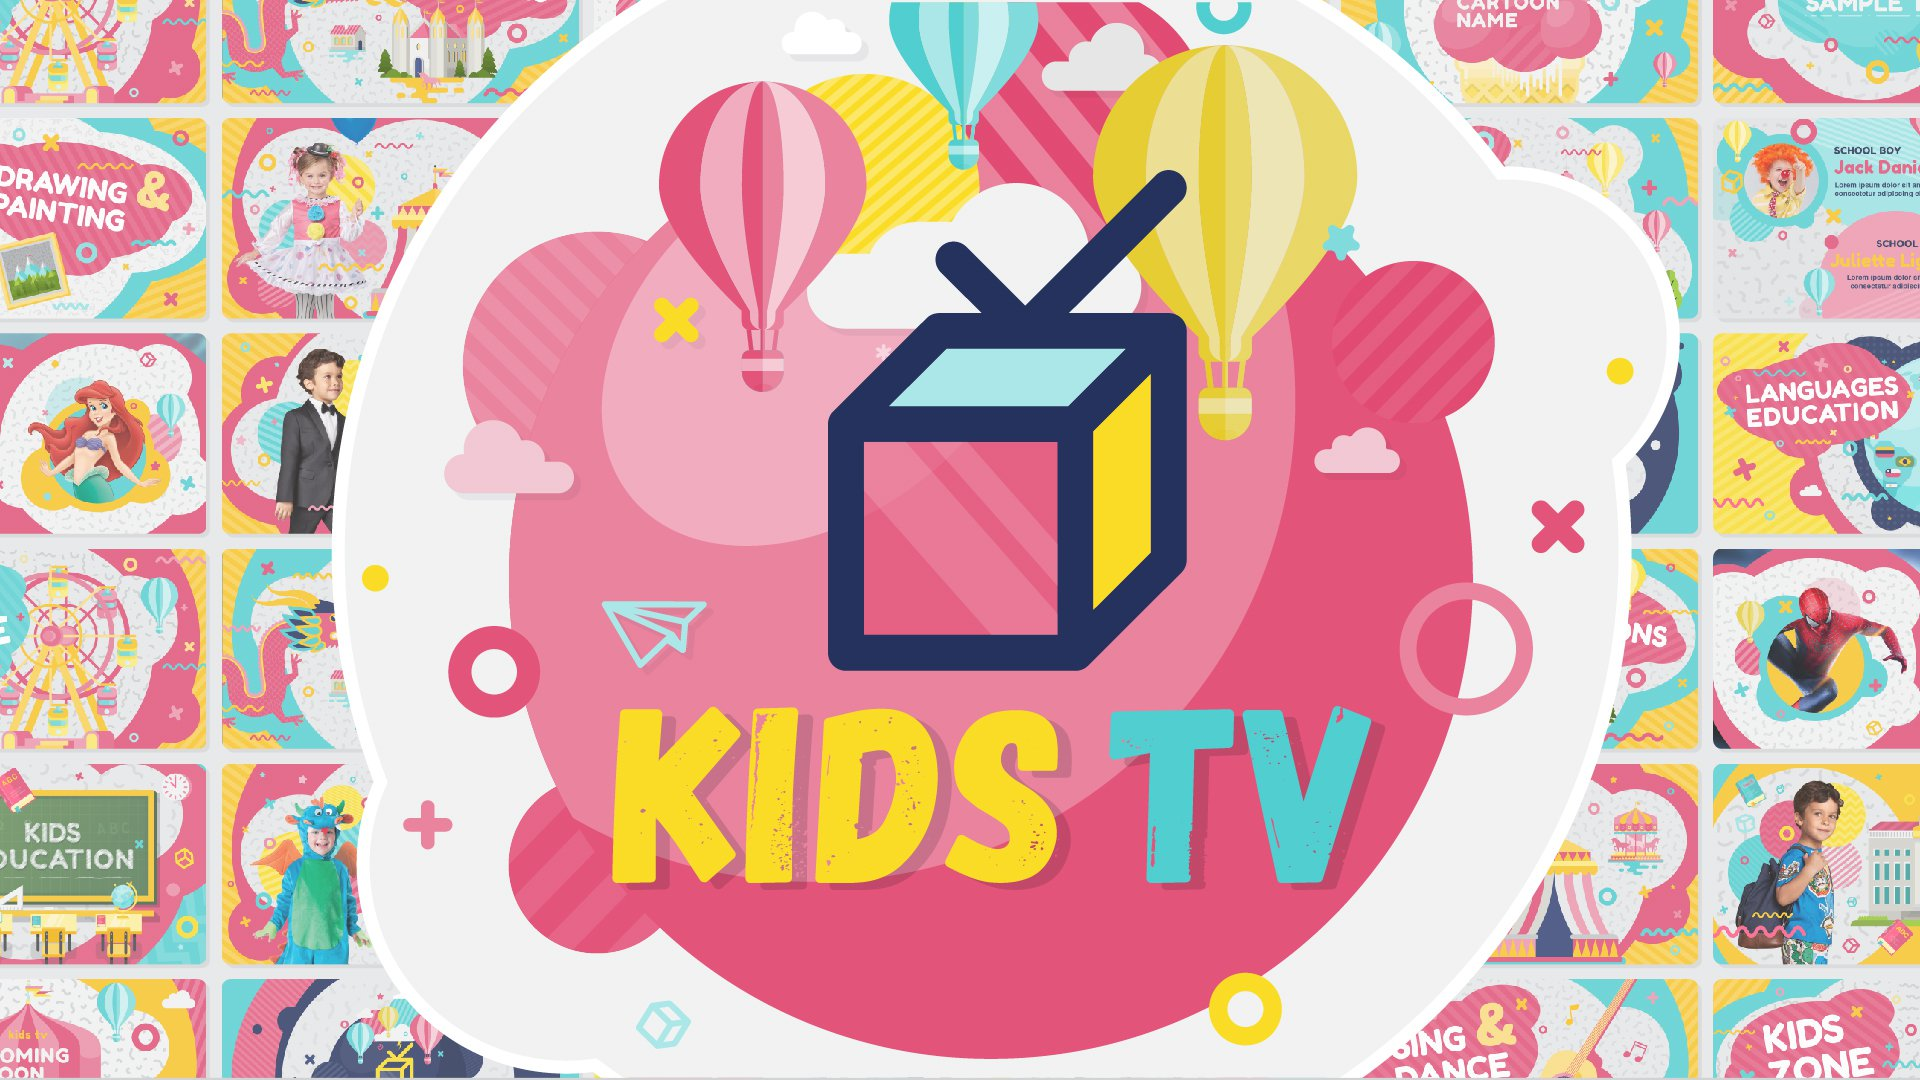 tv effects on kids Learn the effects of tv on your baby's brain, according to research do tv shows & videos aimed at babies helping or harming their development.